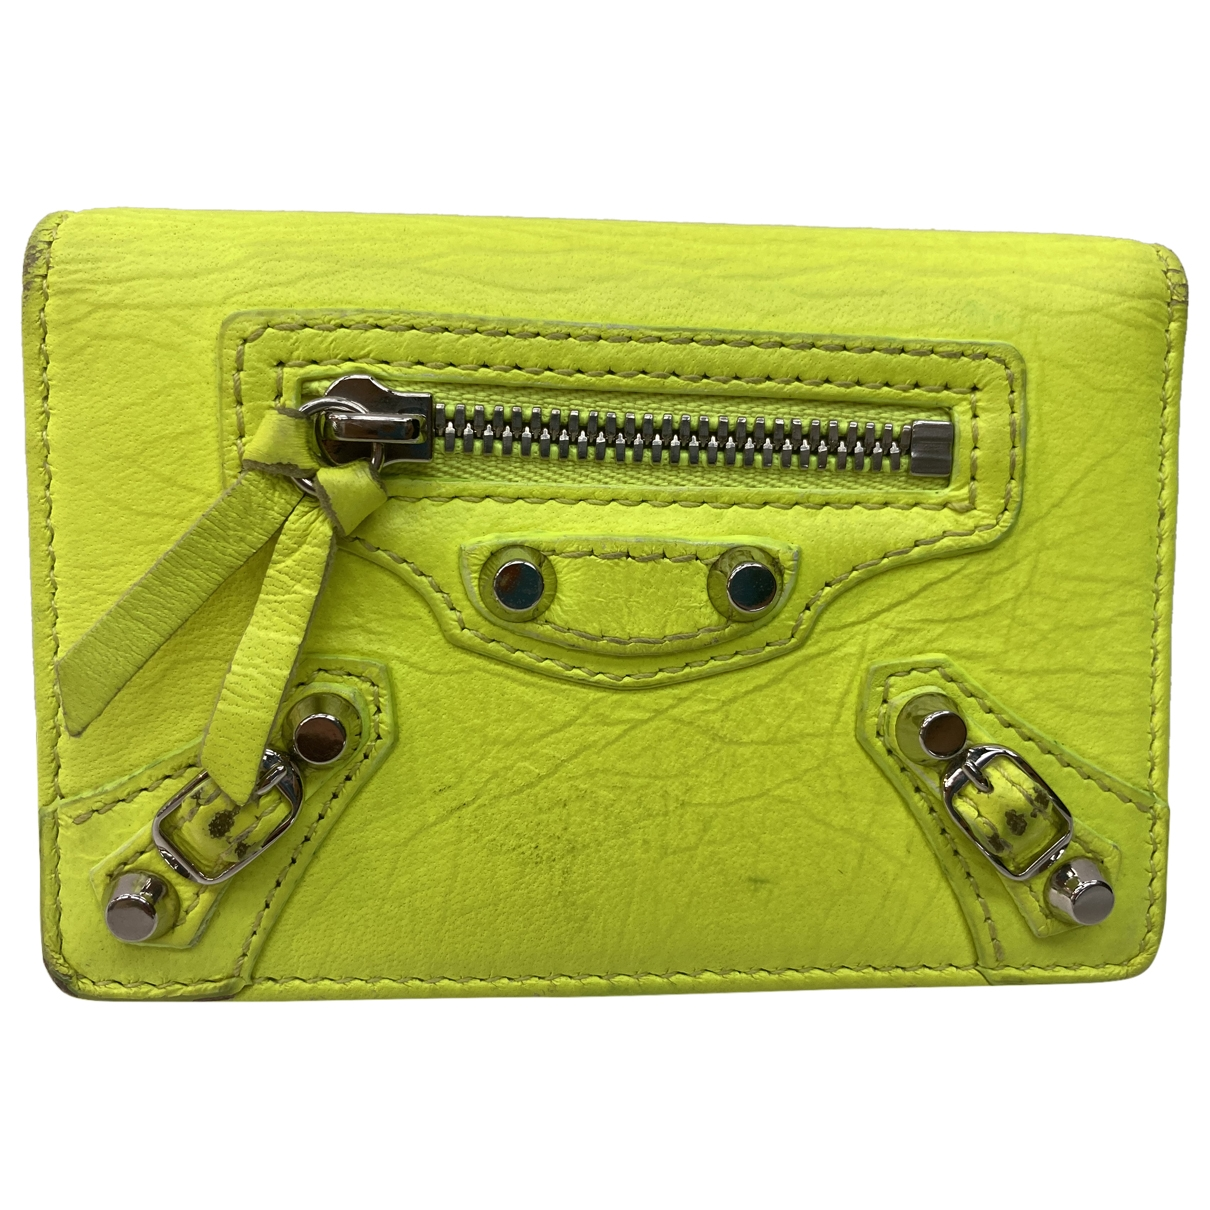 Balenciaga \N Yellow Leather Purses, wallet & cases for Women \N